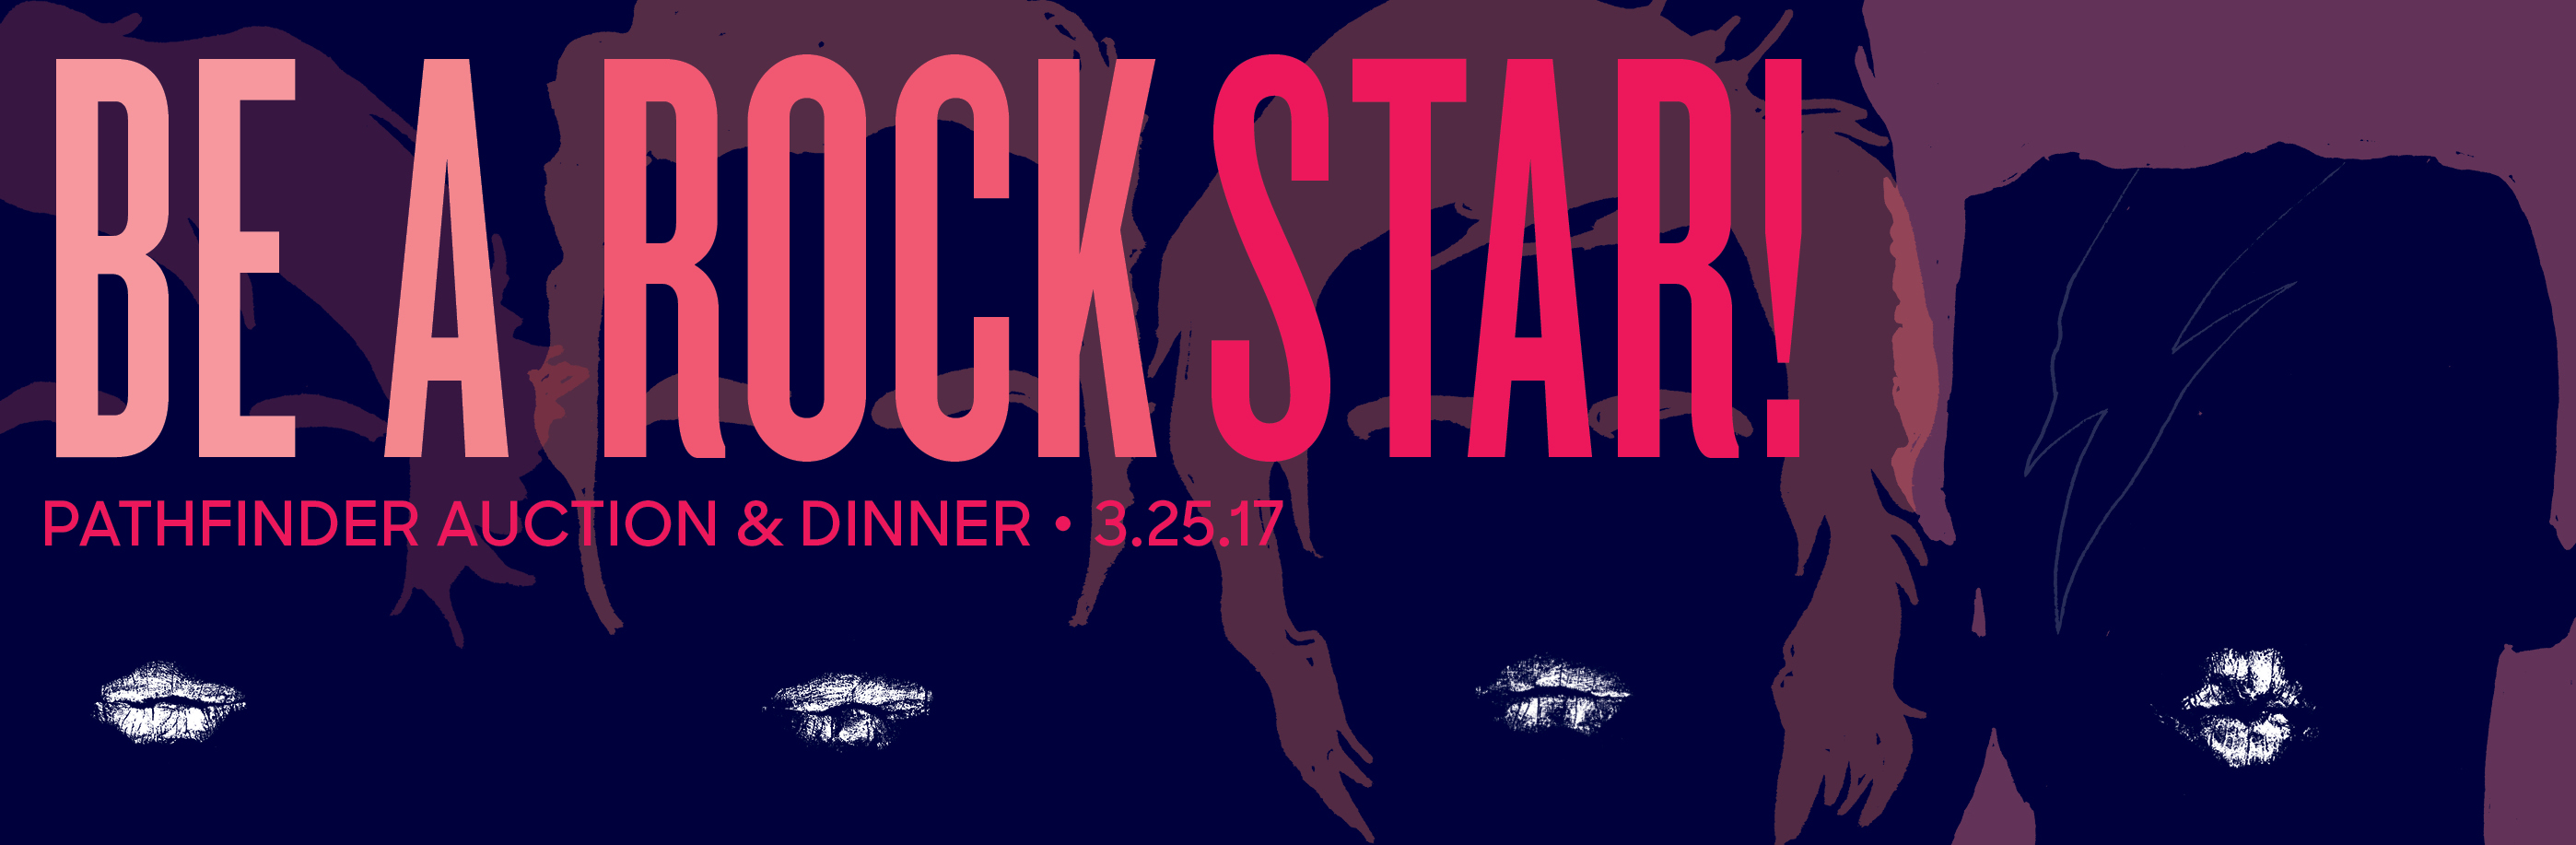 """Be a Rock Star"" Auction Theme Banner"